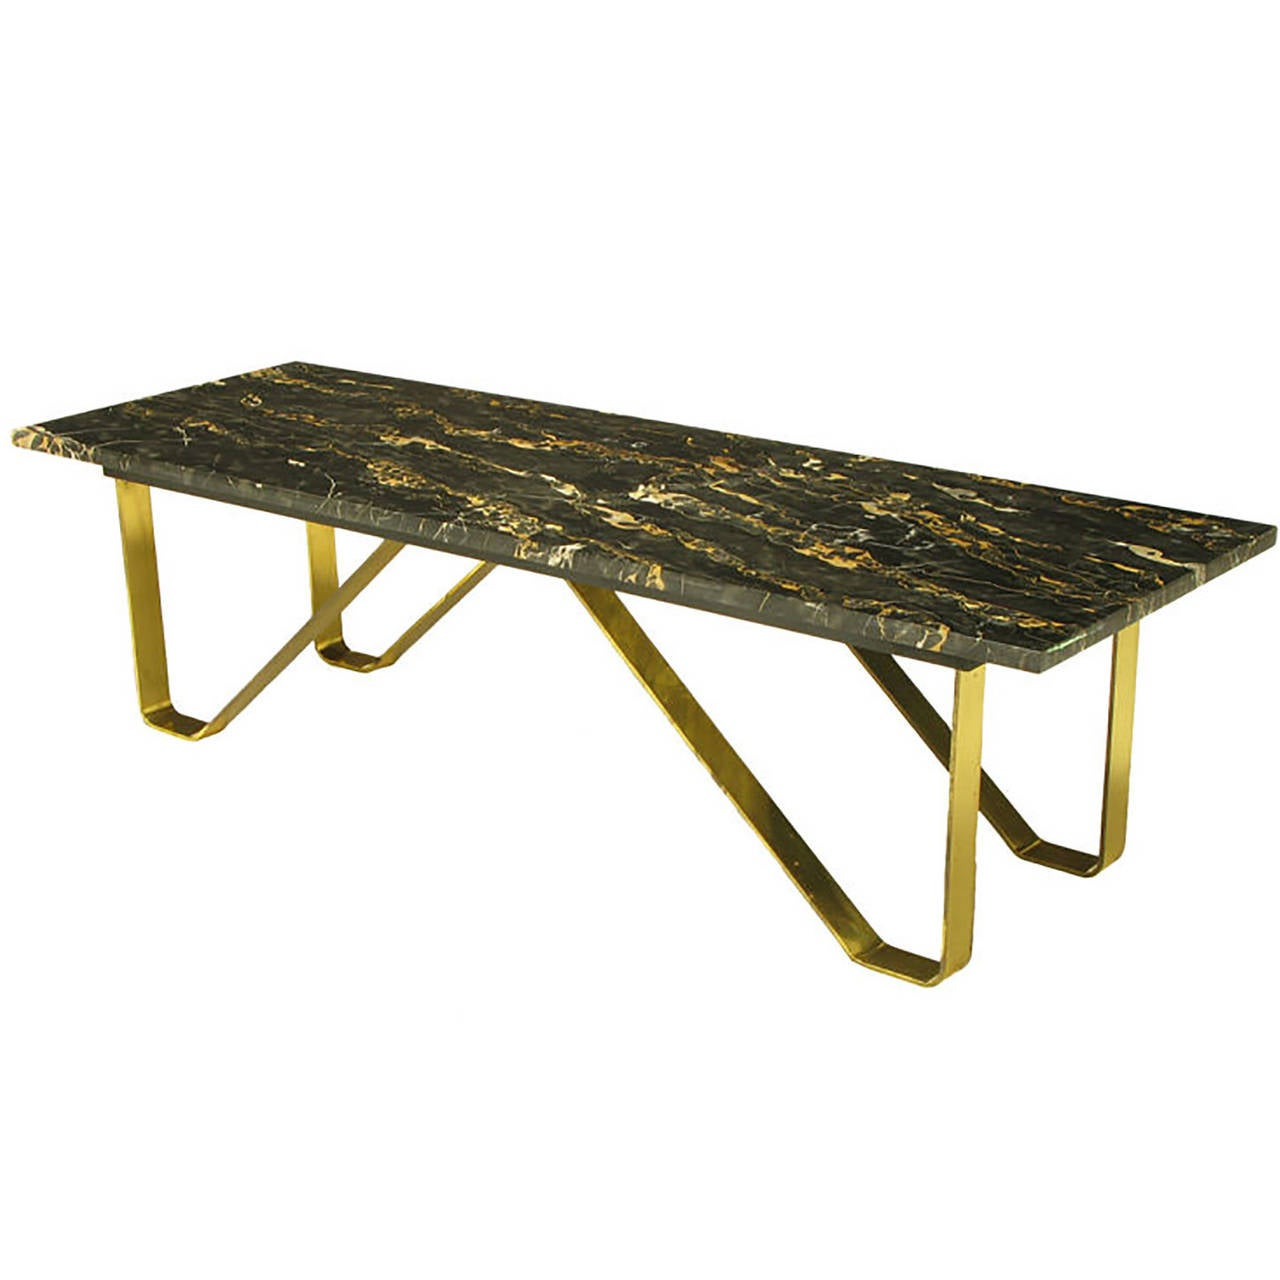 Custom Italian Portoro Marble And Brass Coffee Table For Sale At 1stdibs